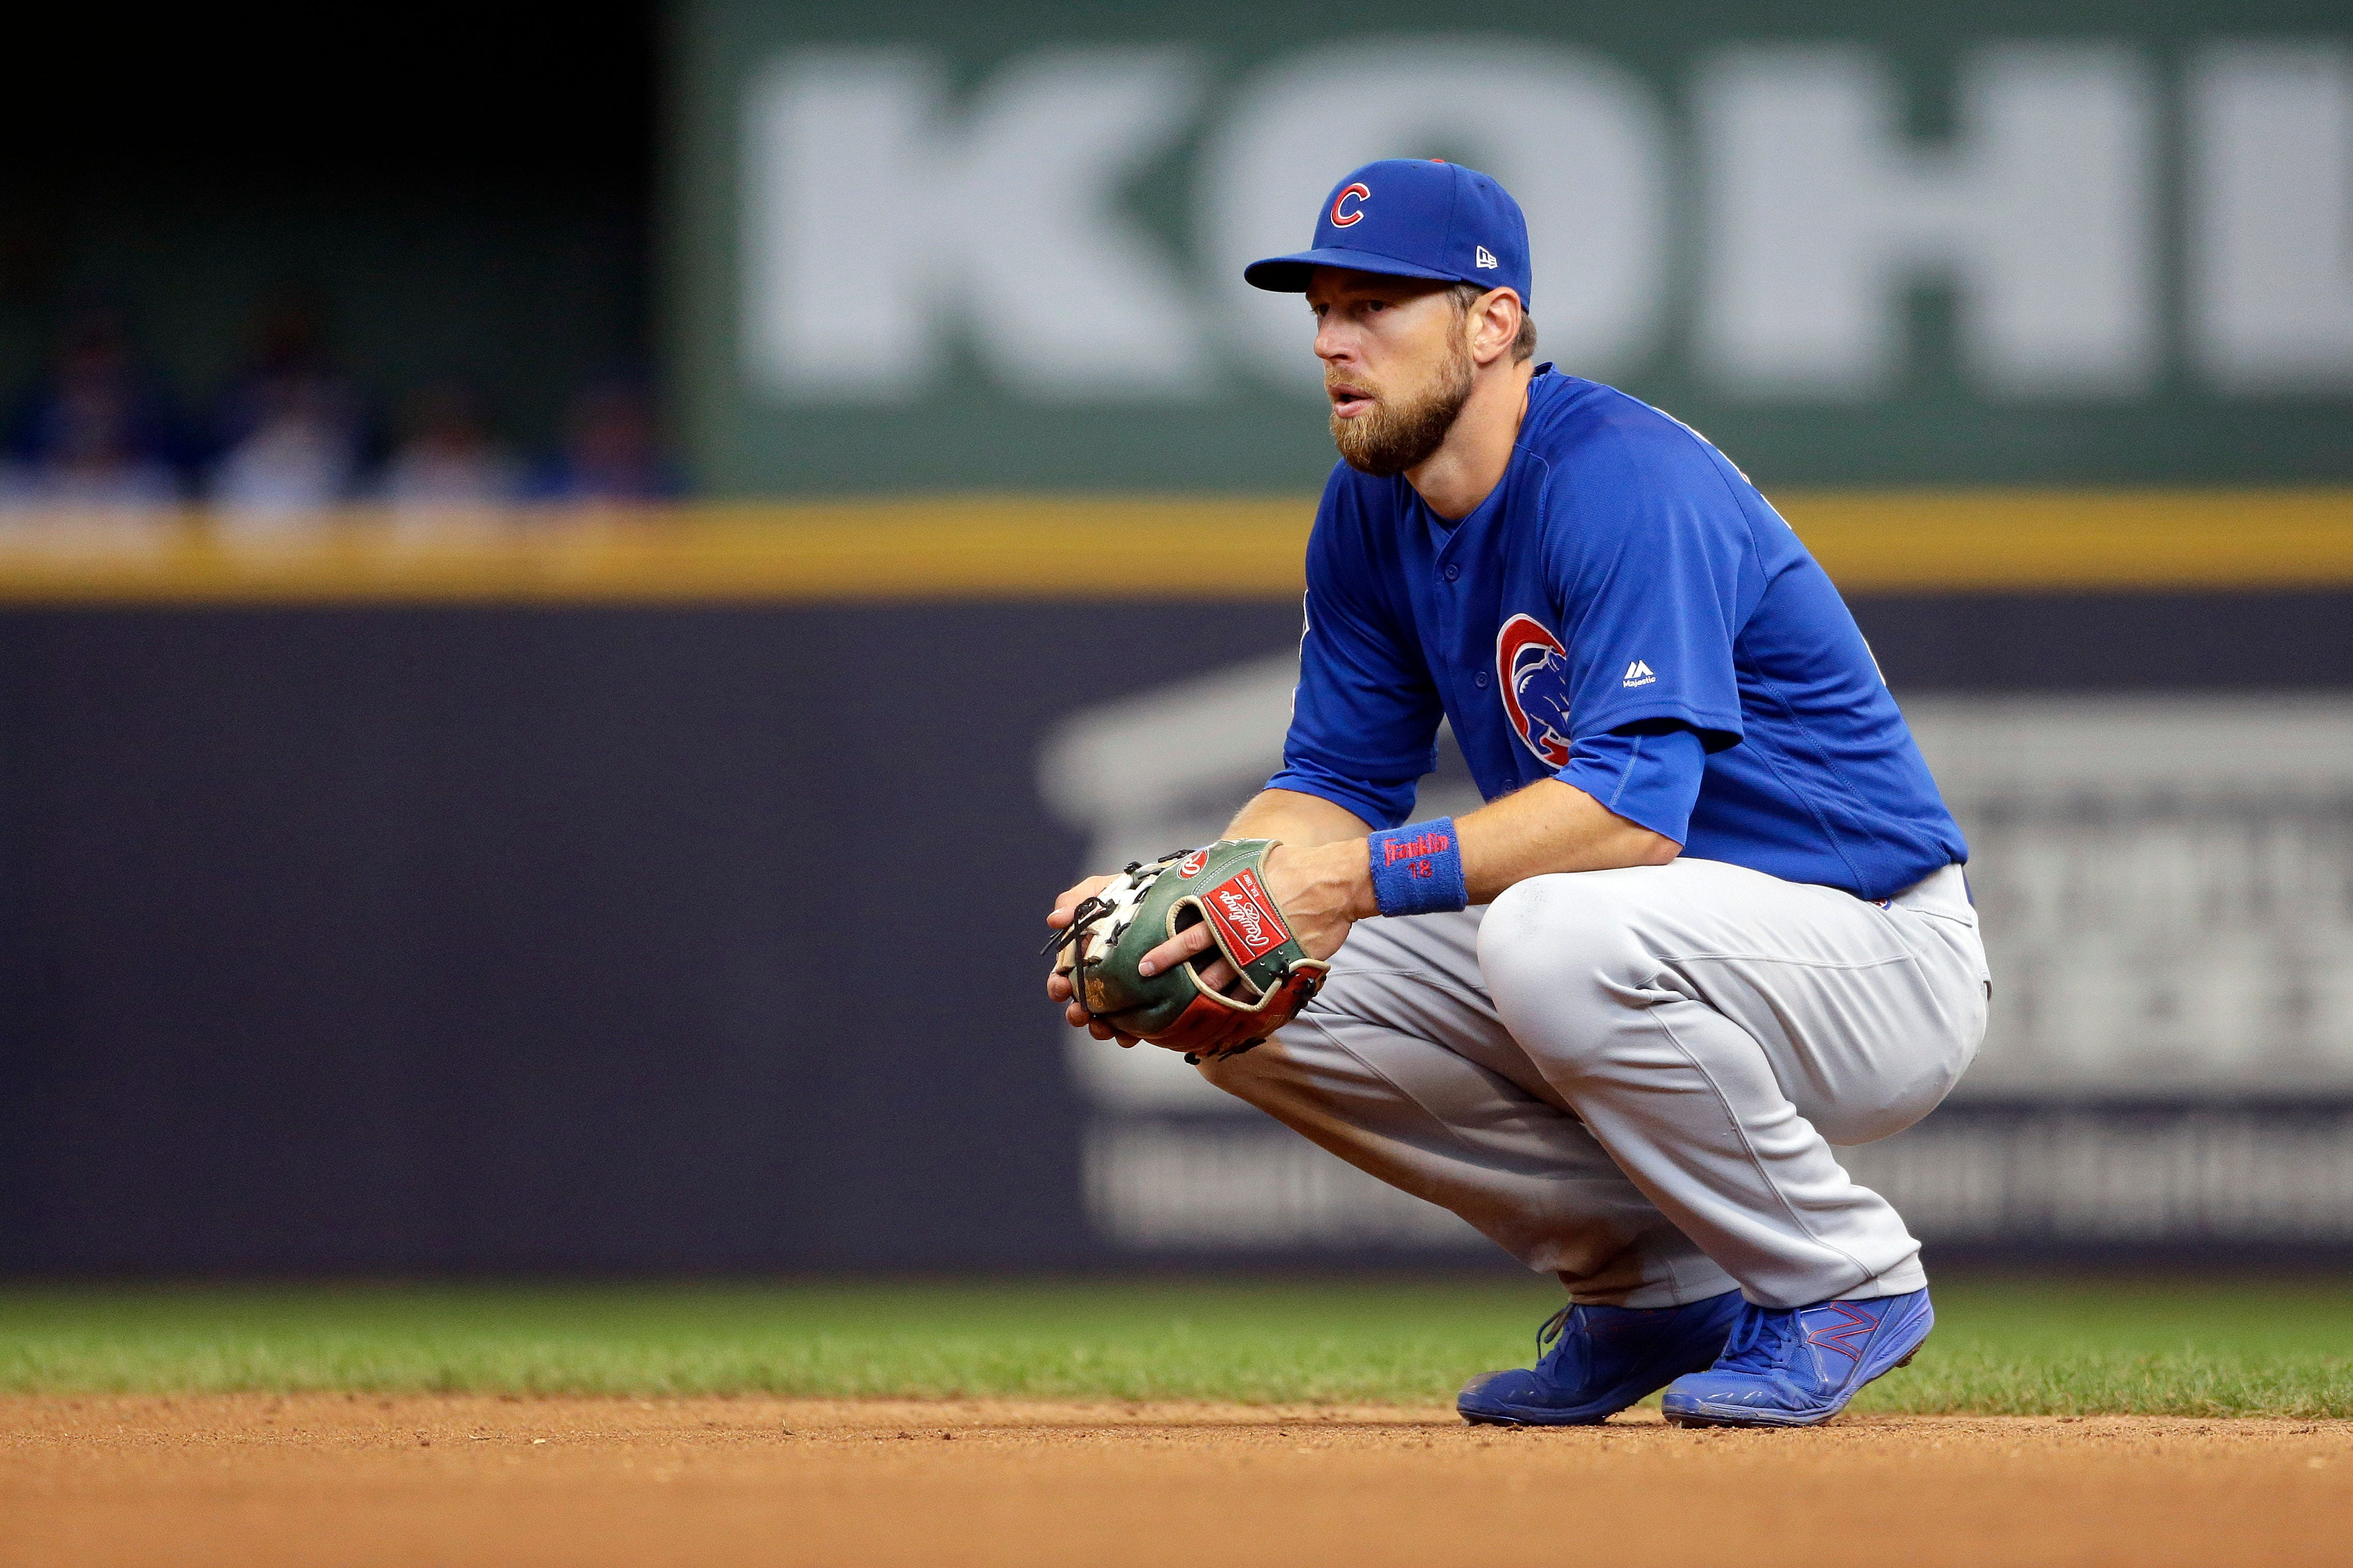 Ex-Cubs star Ben Zobrist claims wife Julianna had affair with their pastor, lawsuit says